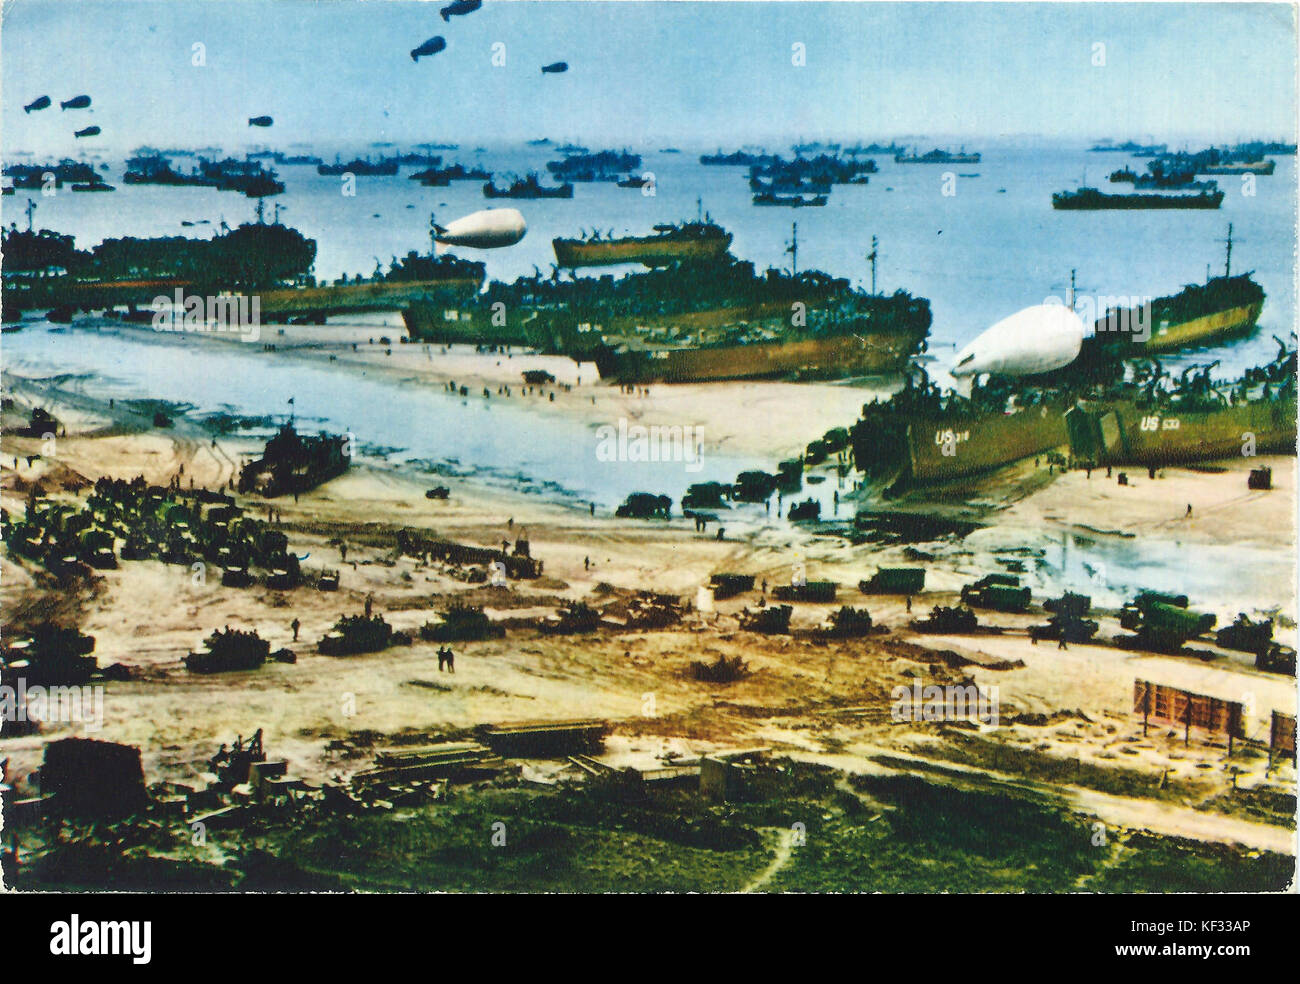 Operation overlord 6 juni 1944 Stock Photo